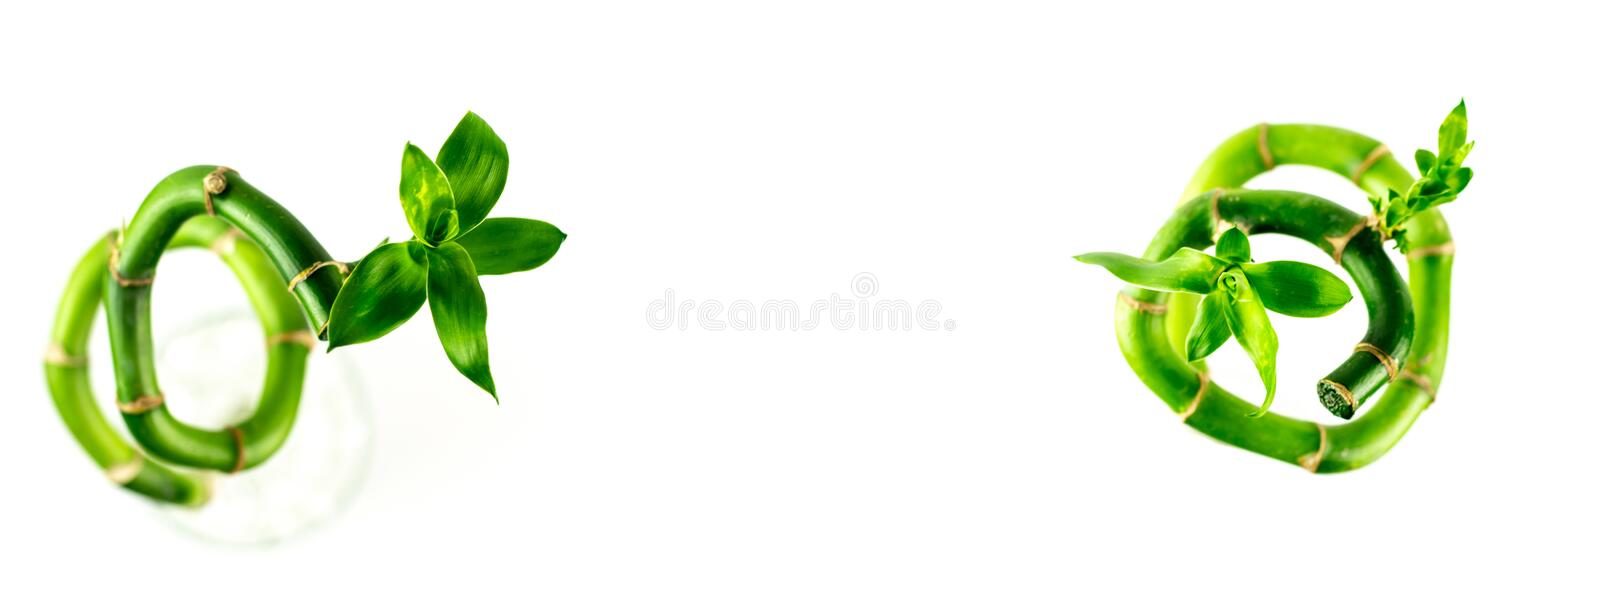 Two spiral shape stem of Lucky Bamboo Dracaena Sanderiana with green leaves, isolated on white background. Clipping Path royalty free stock image